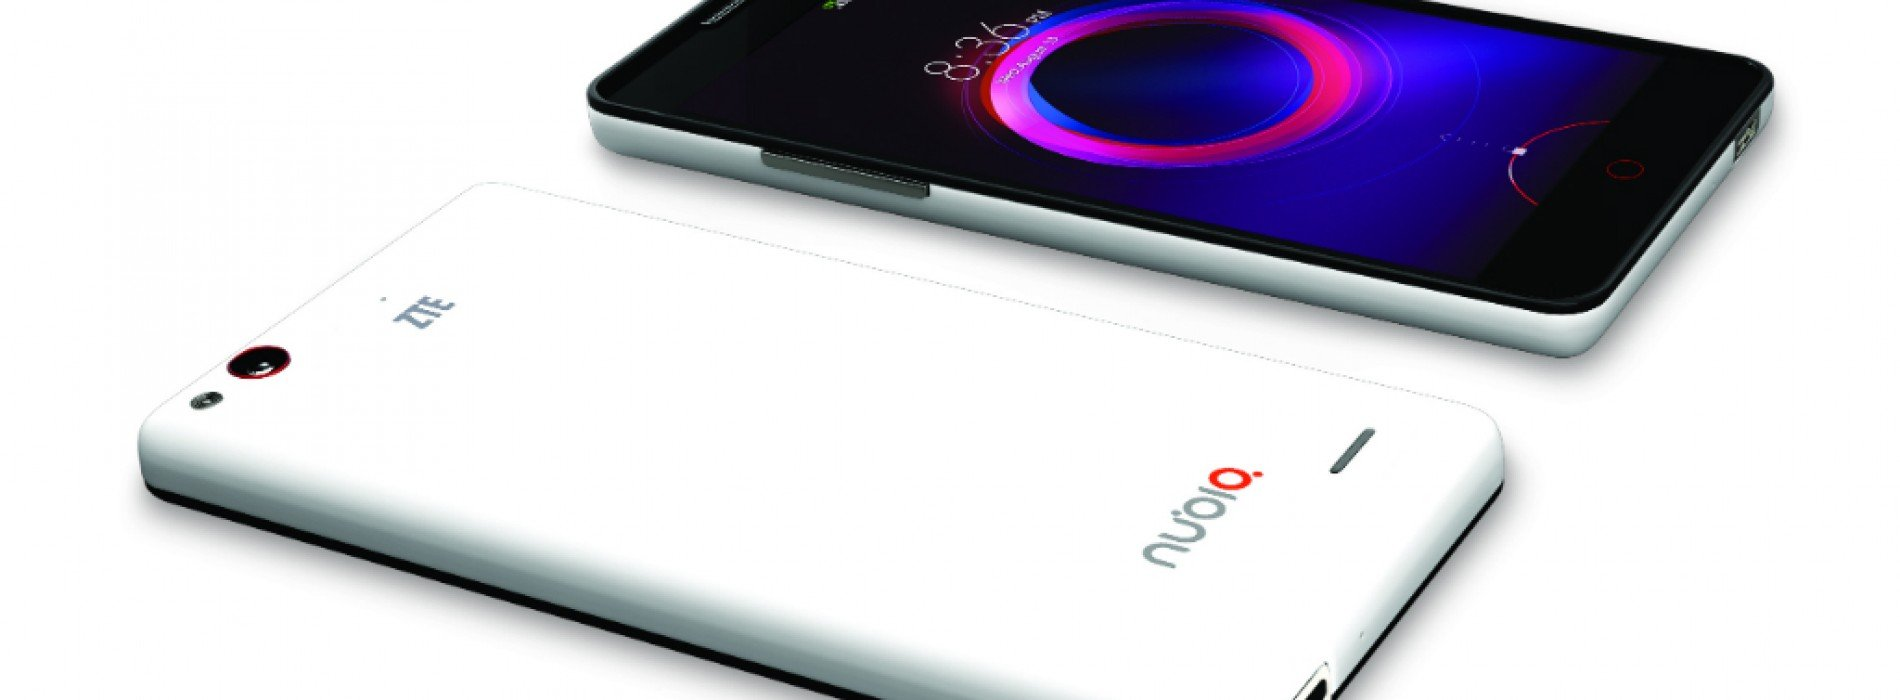 Unlocked ZTE Nubia 5S Mini now available for $280 at Amazon